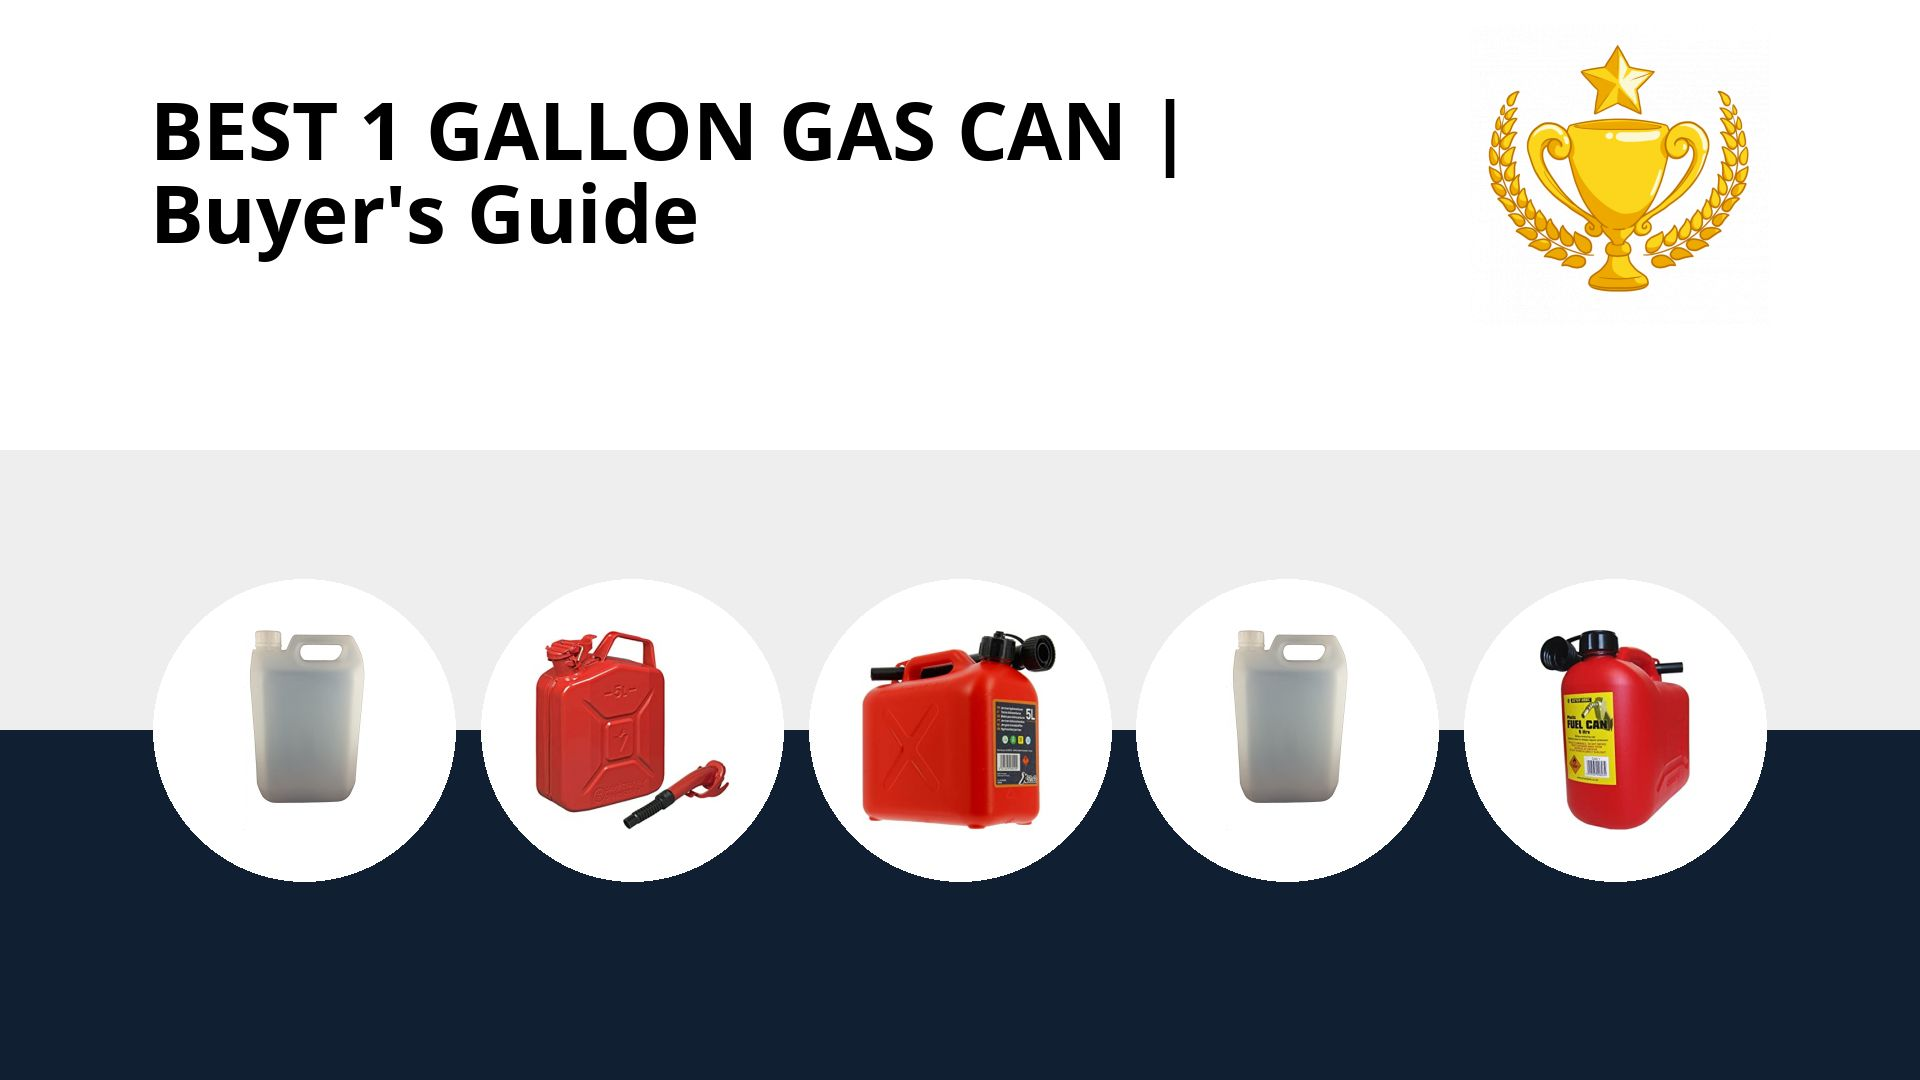 Best 1 Gallon Gas Can: image